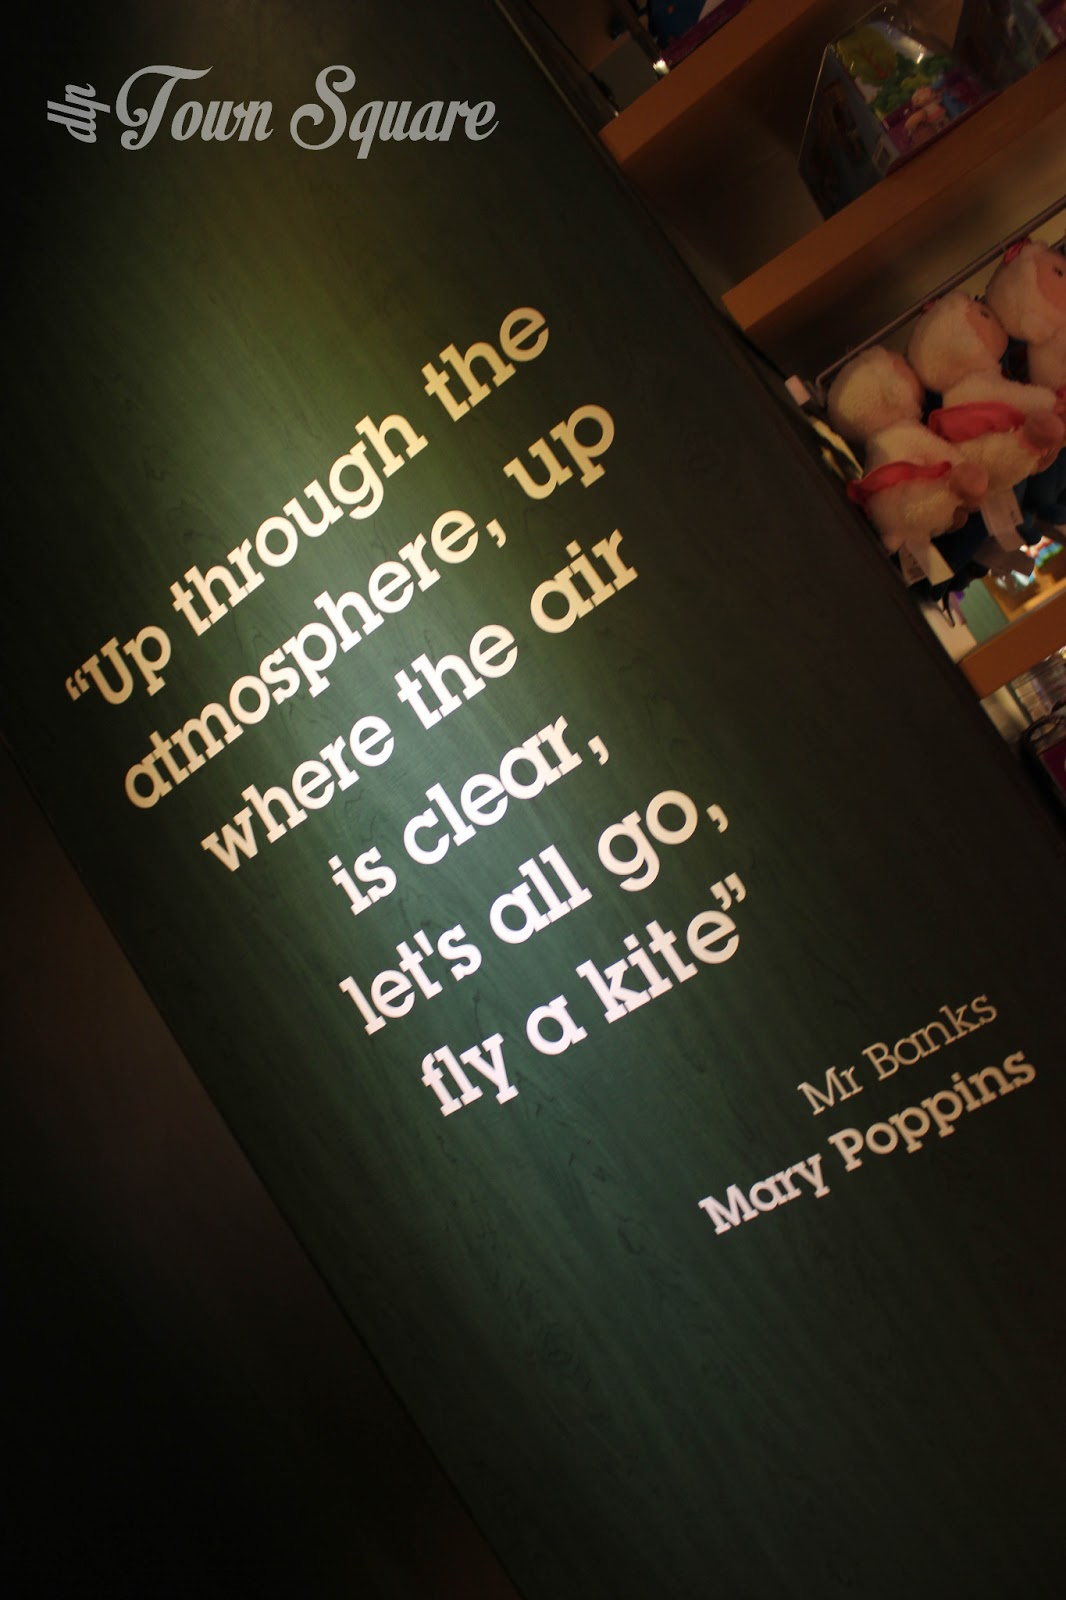 Mary Poppins quote on the wall